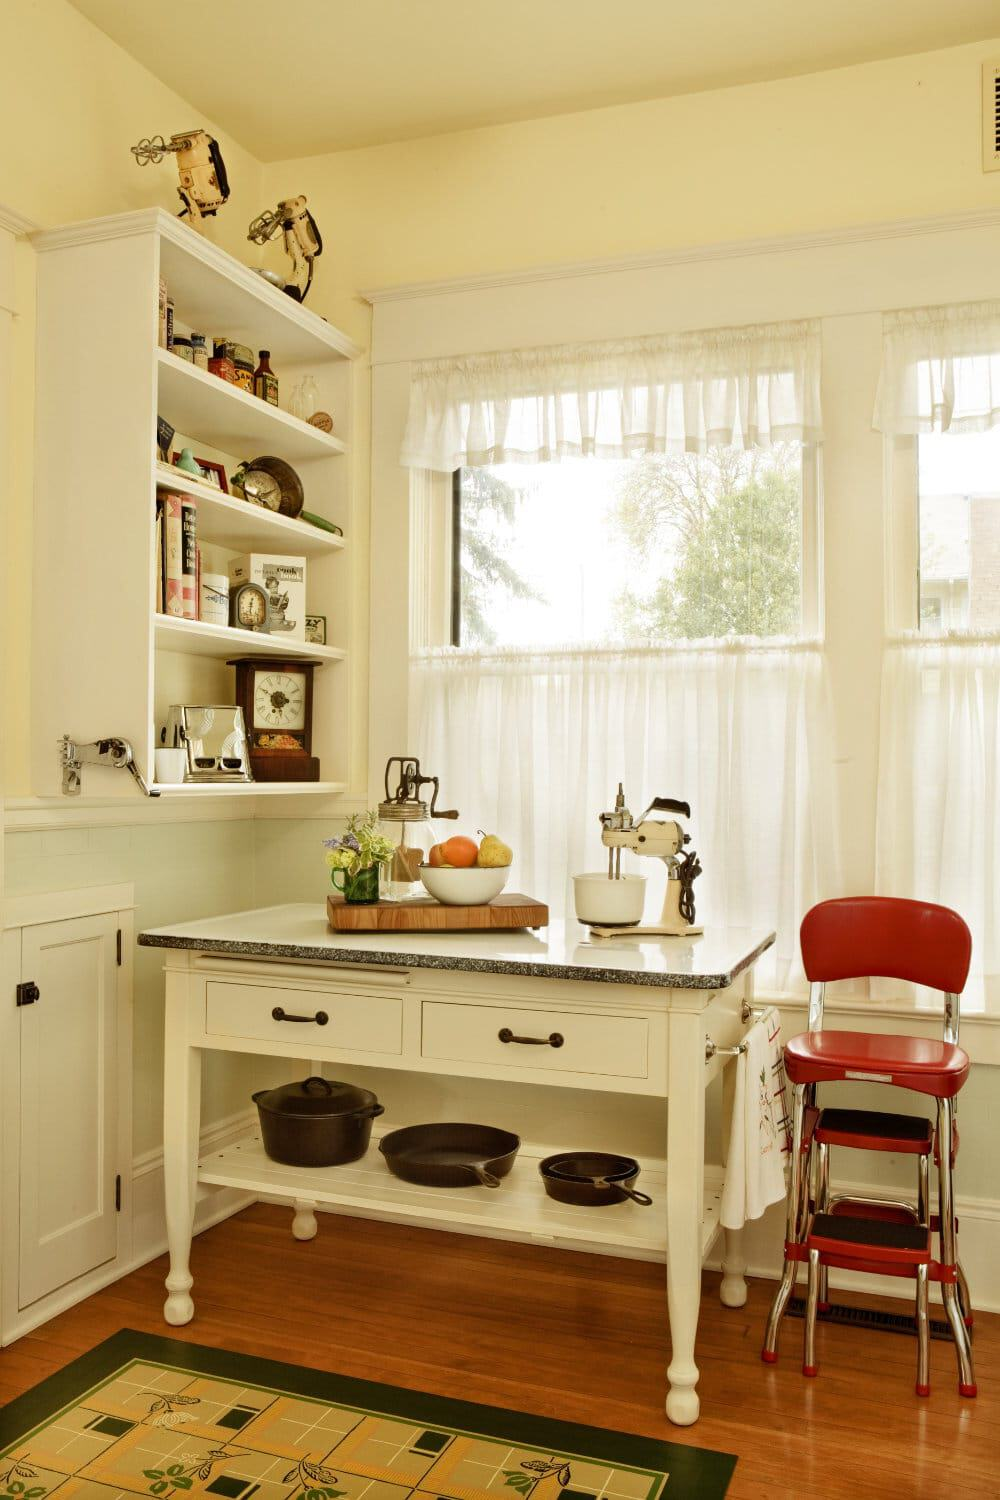 Young Kitchen table and cabinets